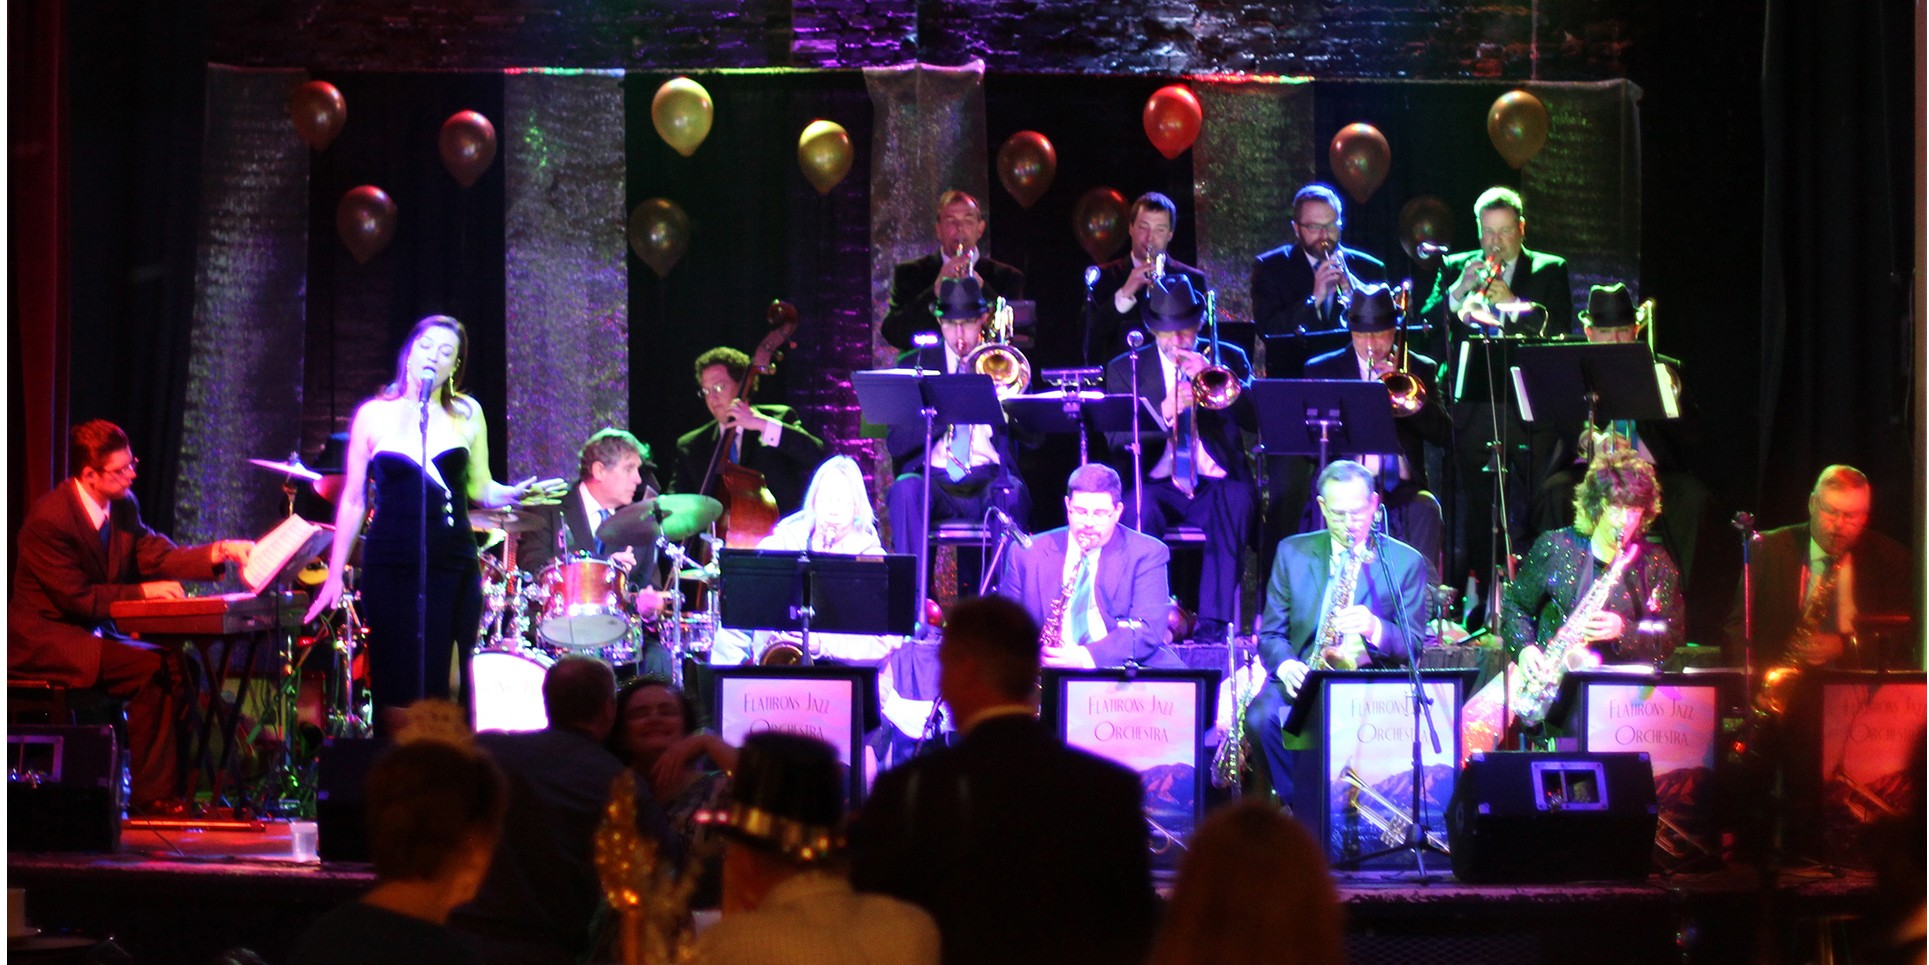 Flatirons Jazz Orchestra at Dickens Opera House